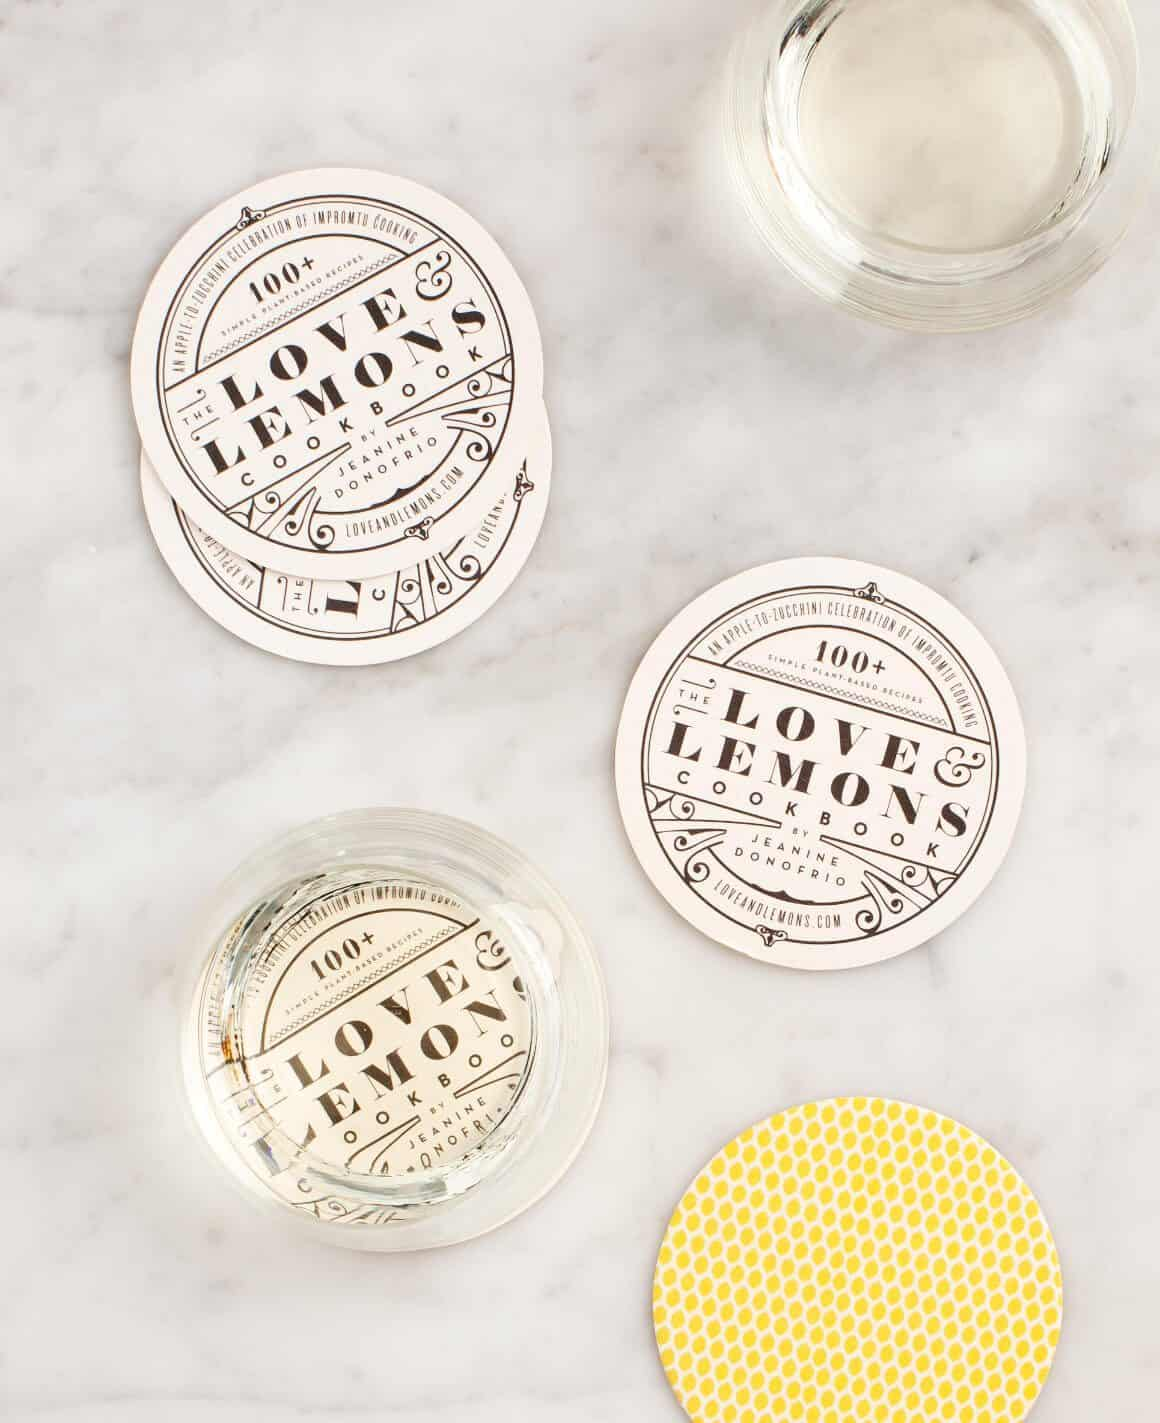 Love & Lemons 2-sided coasters - FREE GIFT with your book pre-order